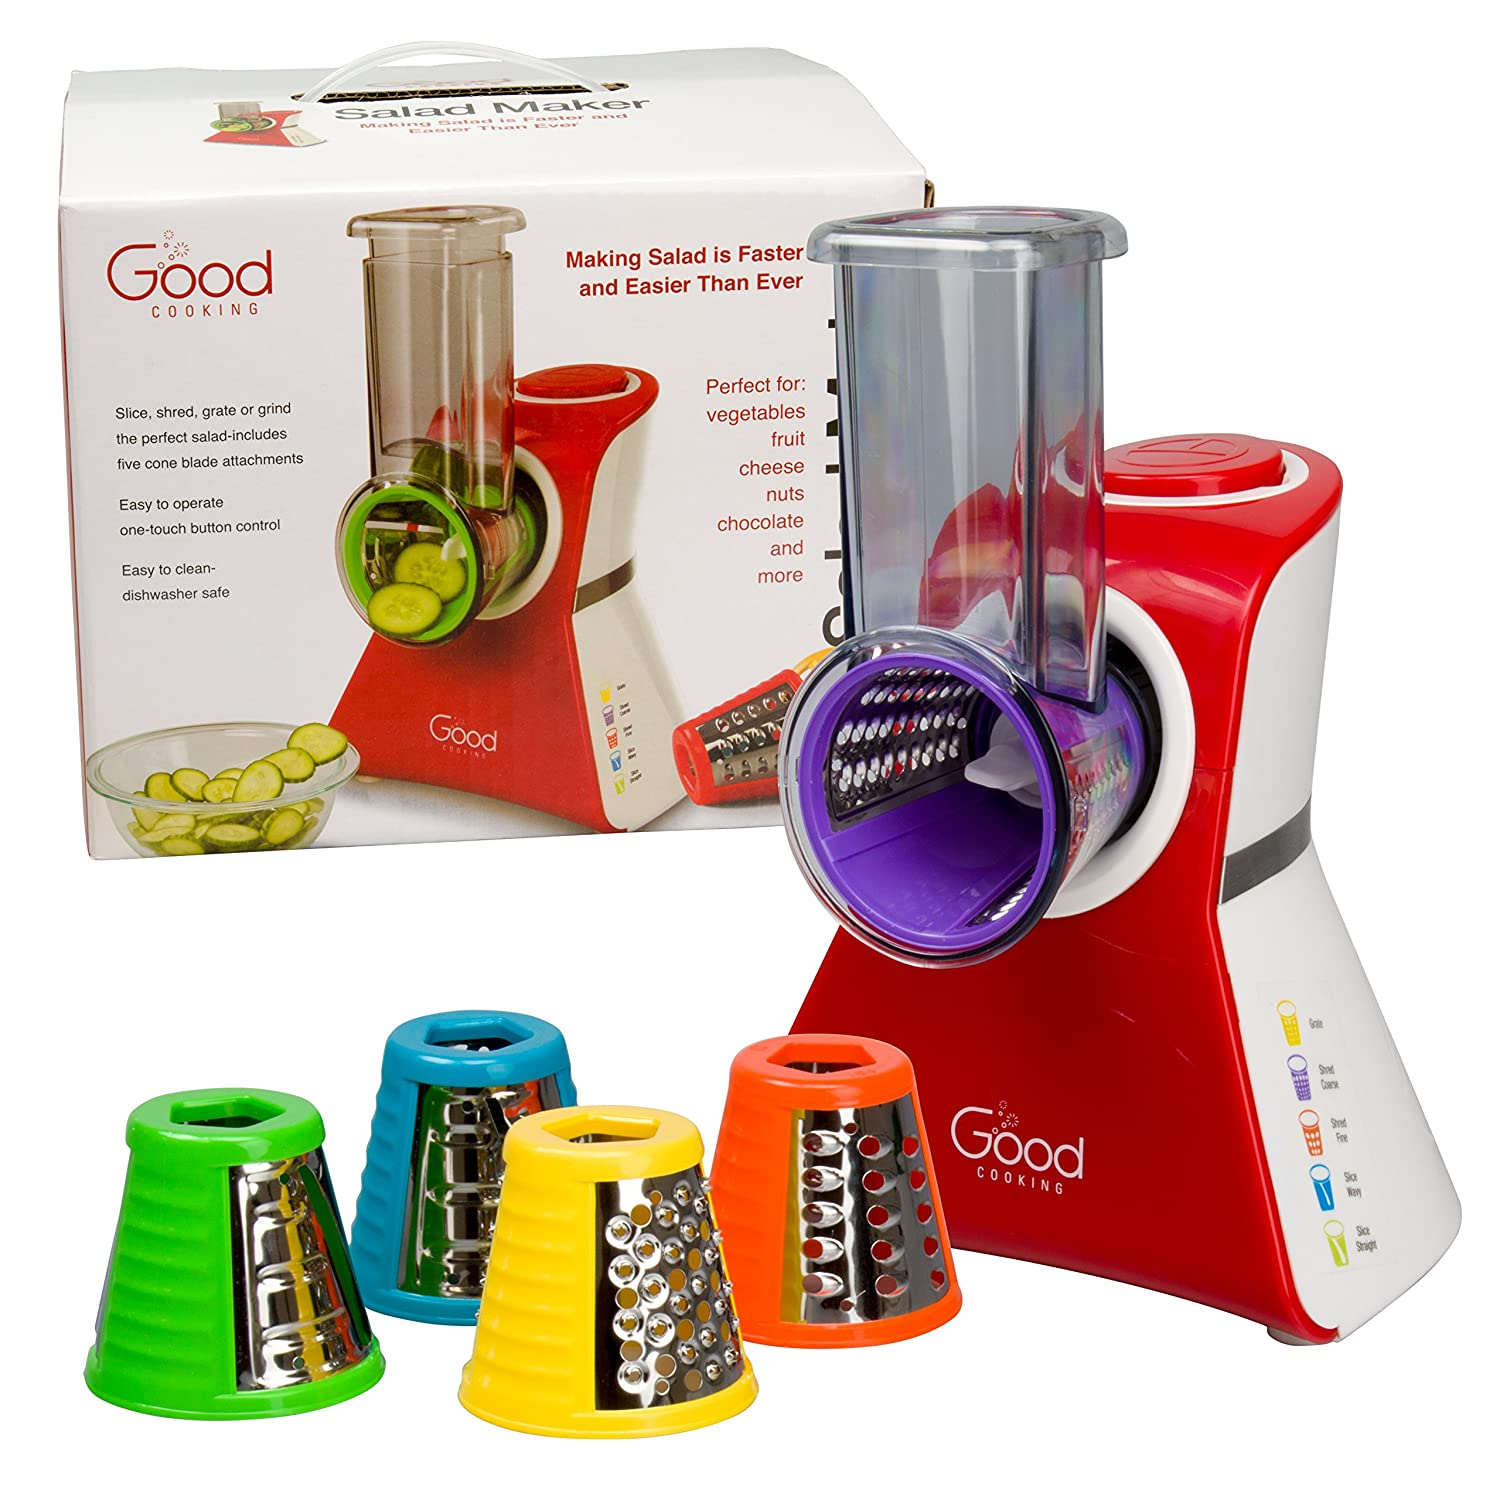 Salad Maker - Electronic Shredder, Slicer, Chopper, & Shooter By Good Cooking cooking by hand